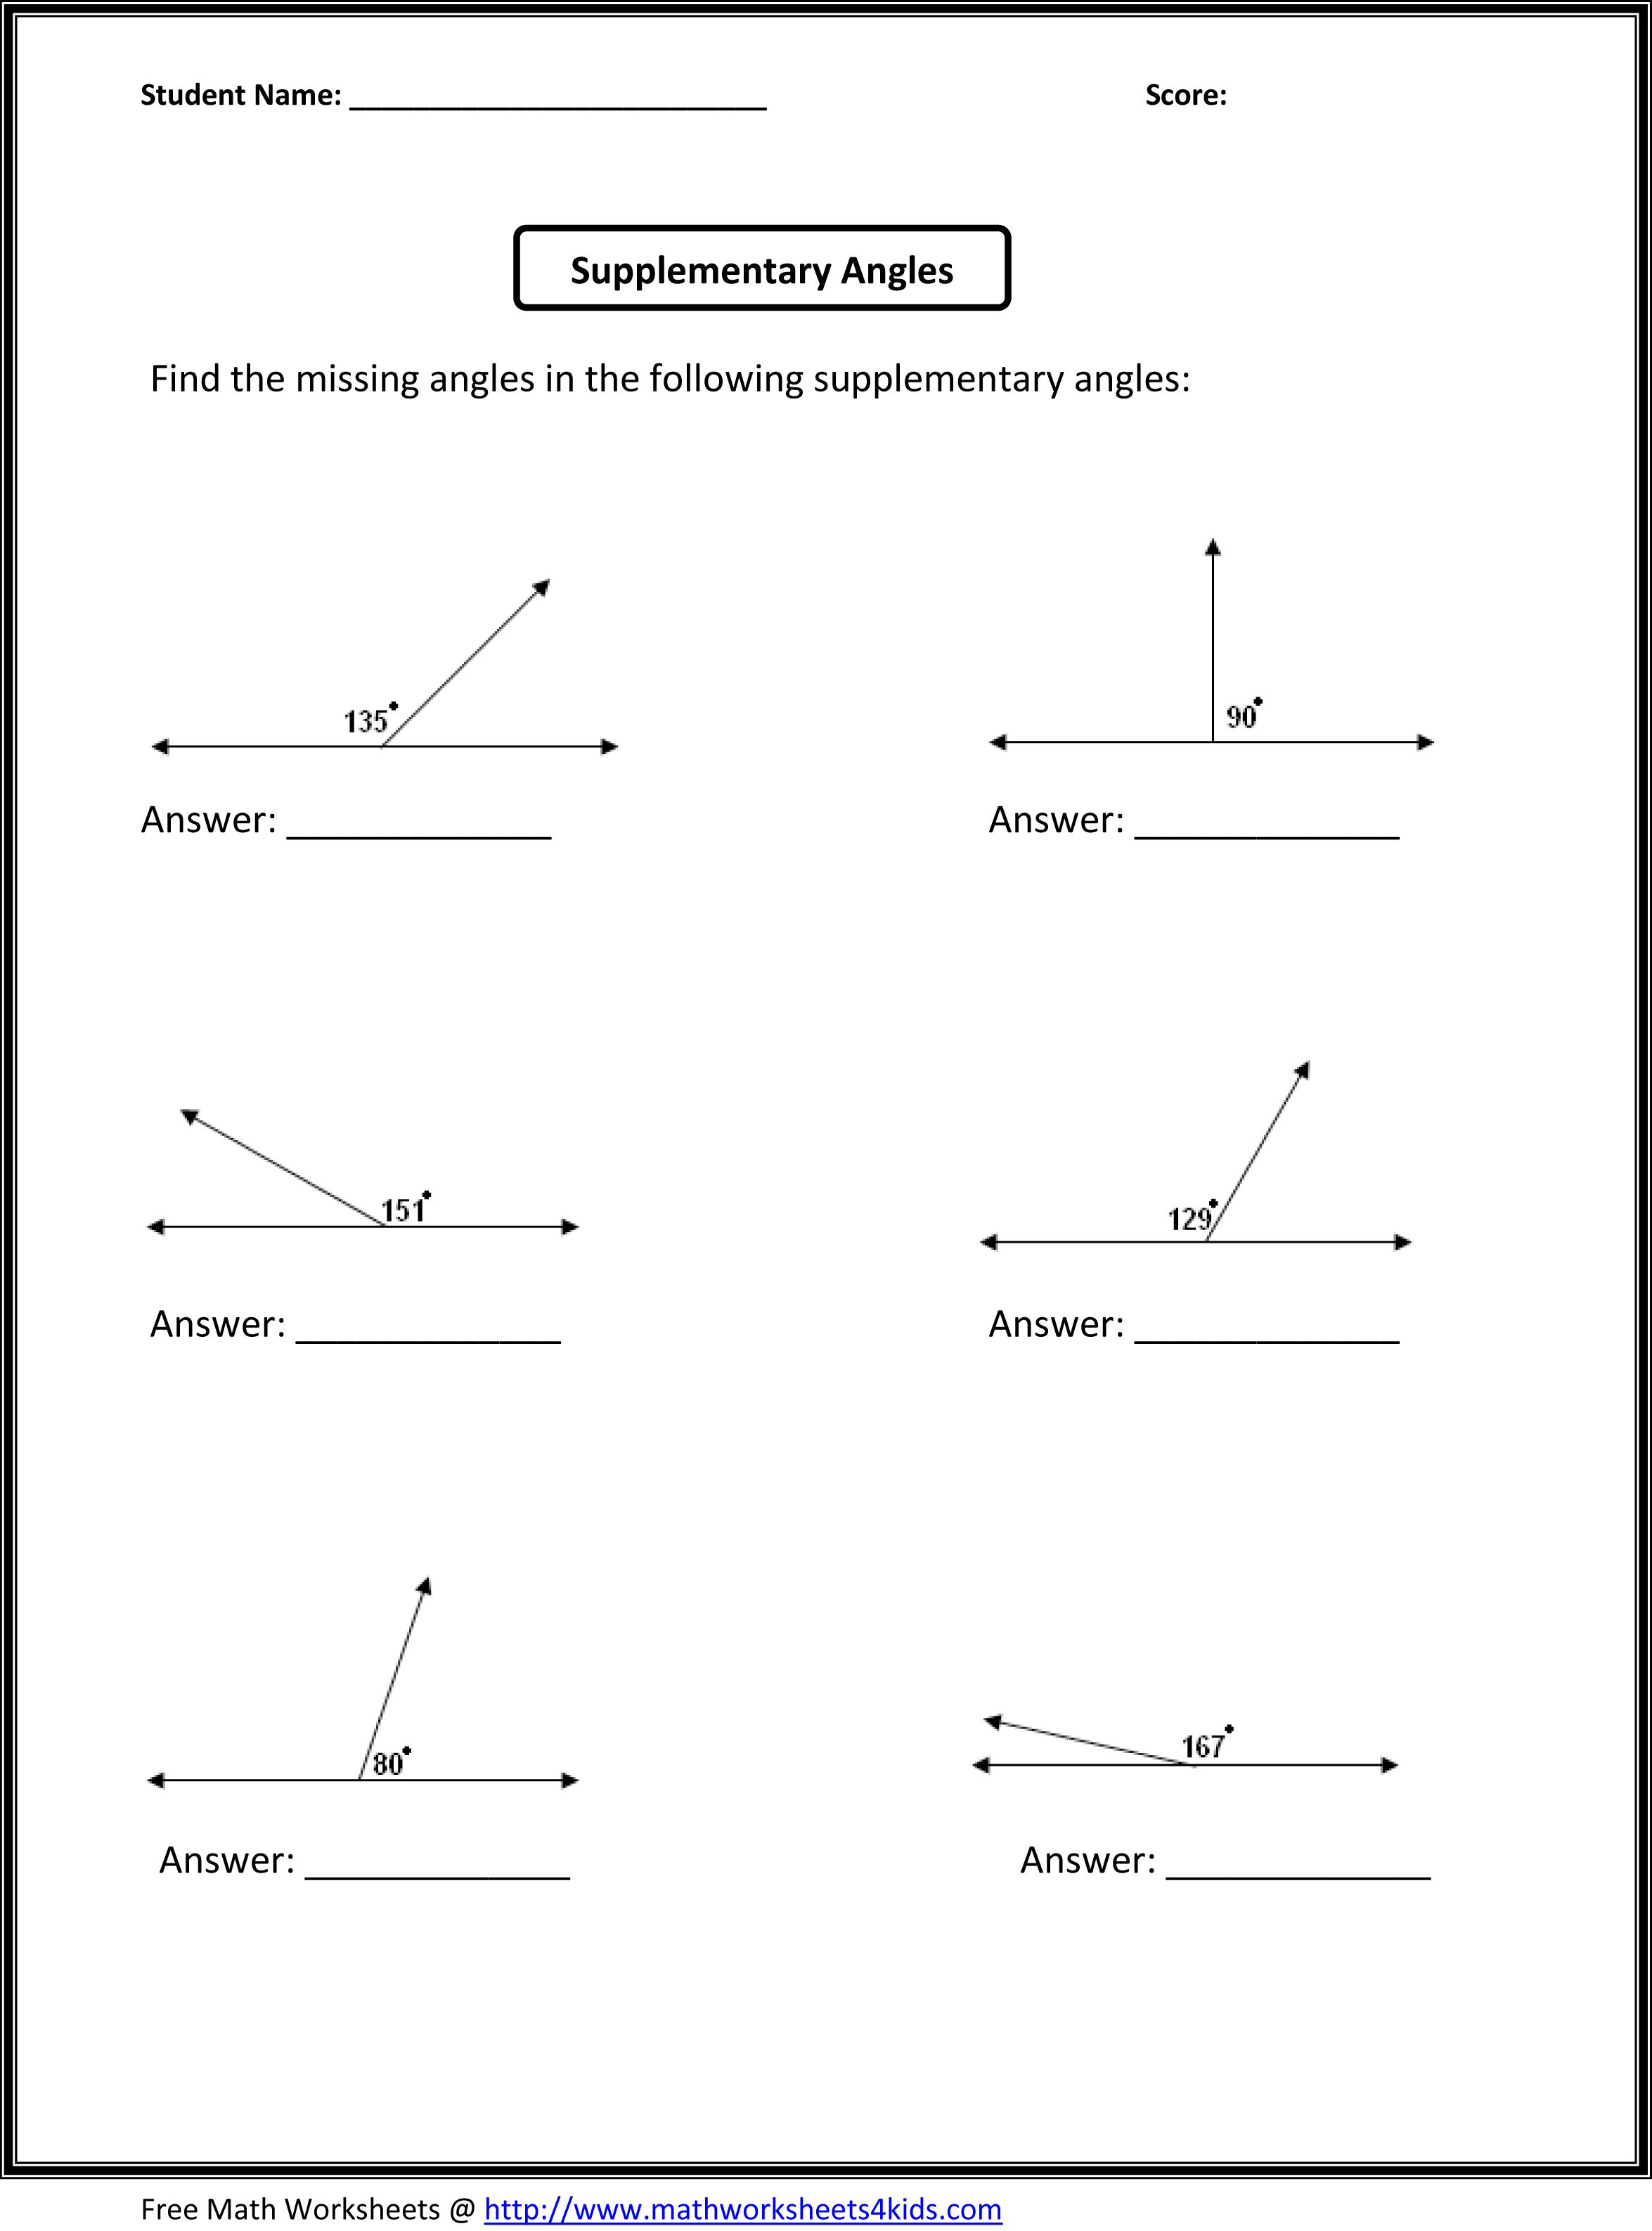 Worksheets Math Worksheets For 6th Graders Printable supplementary angles classroom madness pinterest math sixth grade worksheets